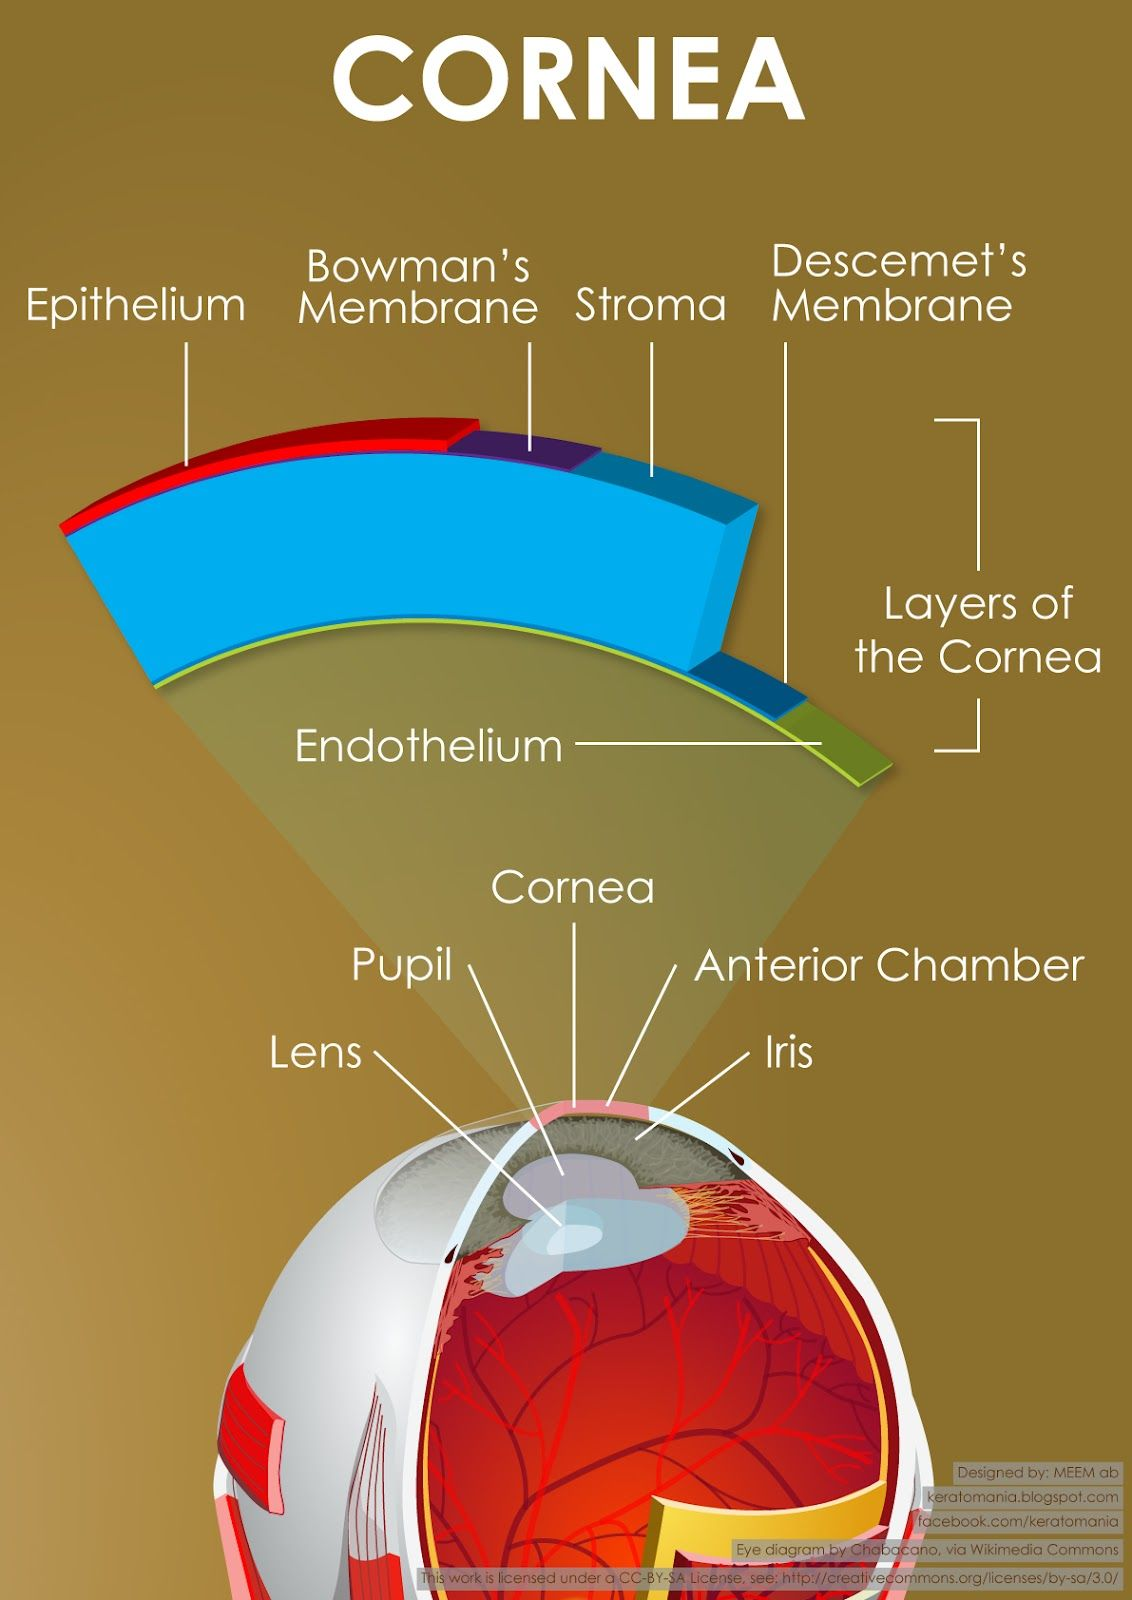 Canine Eye Diagram Right Les Paul Jr P90 Wiring A Showing Part Of The Cornea And Its Layers